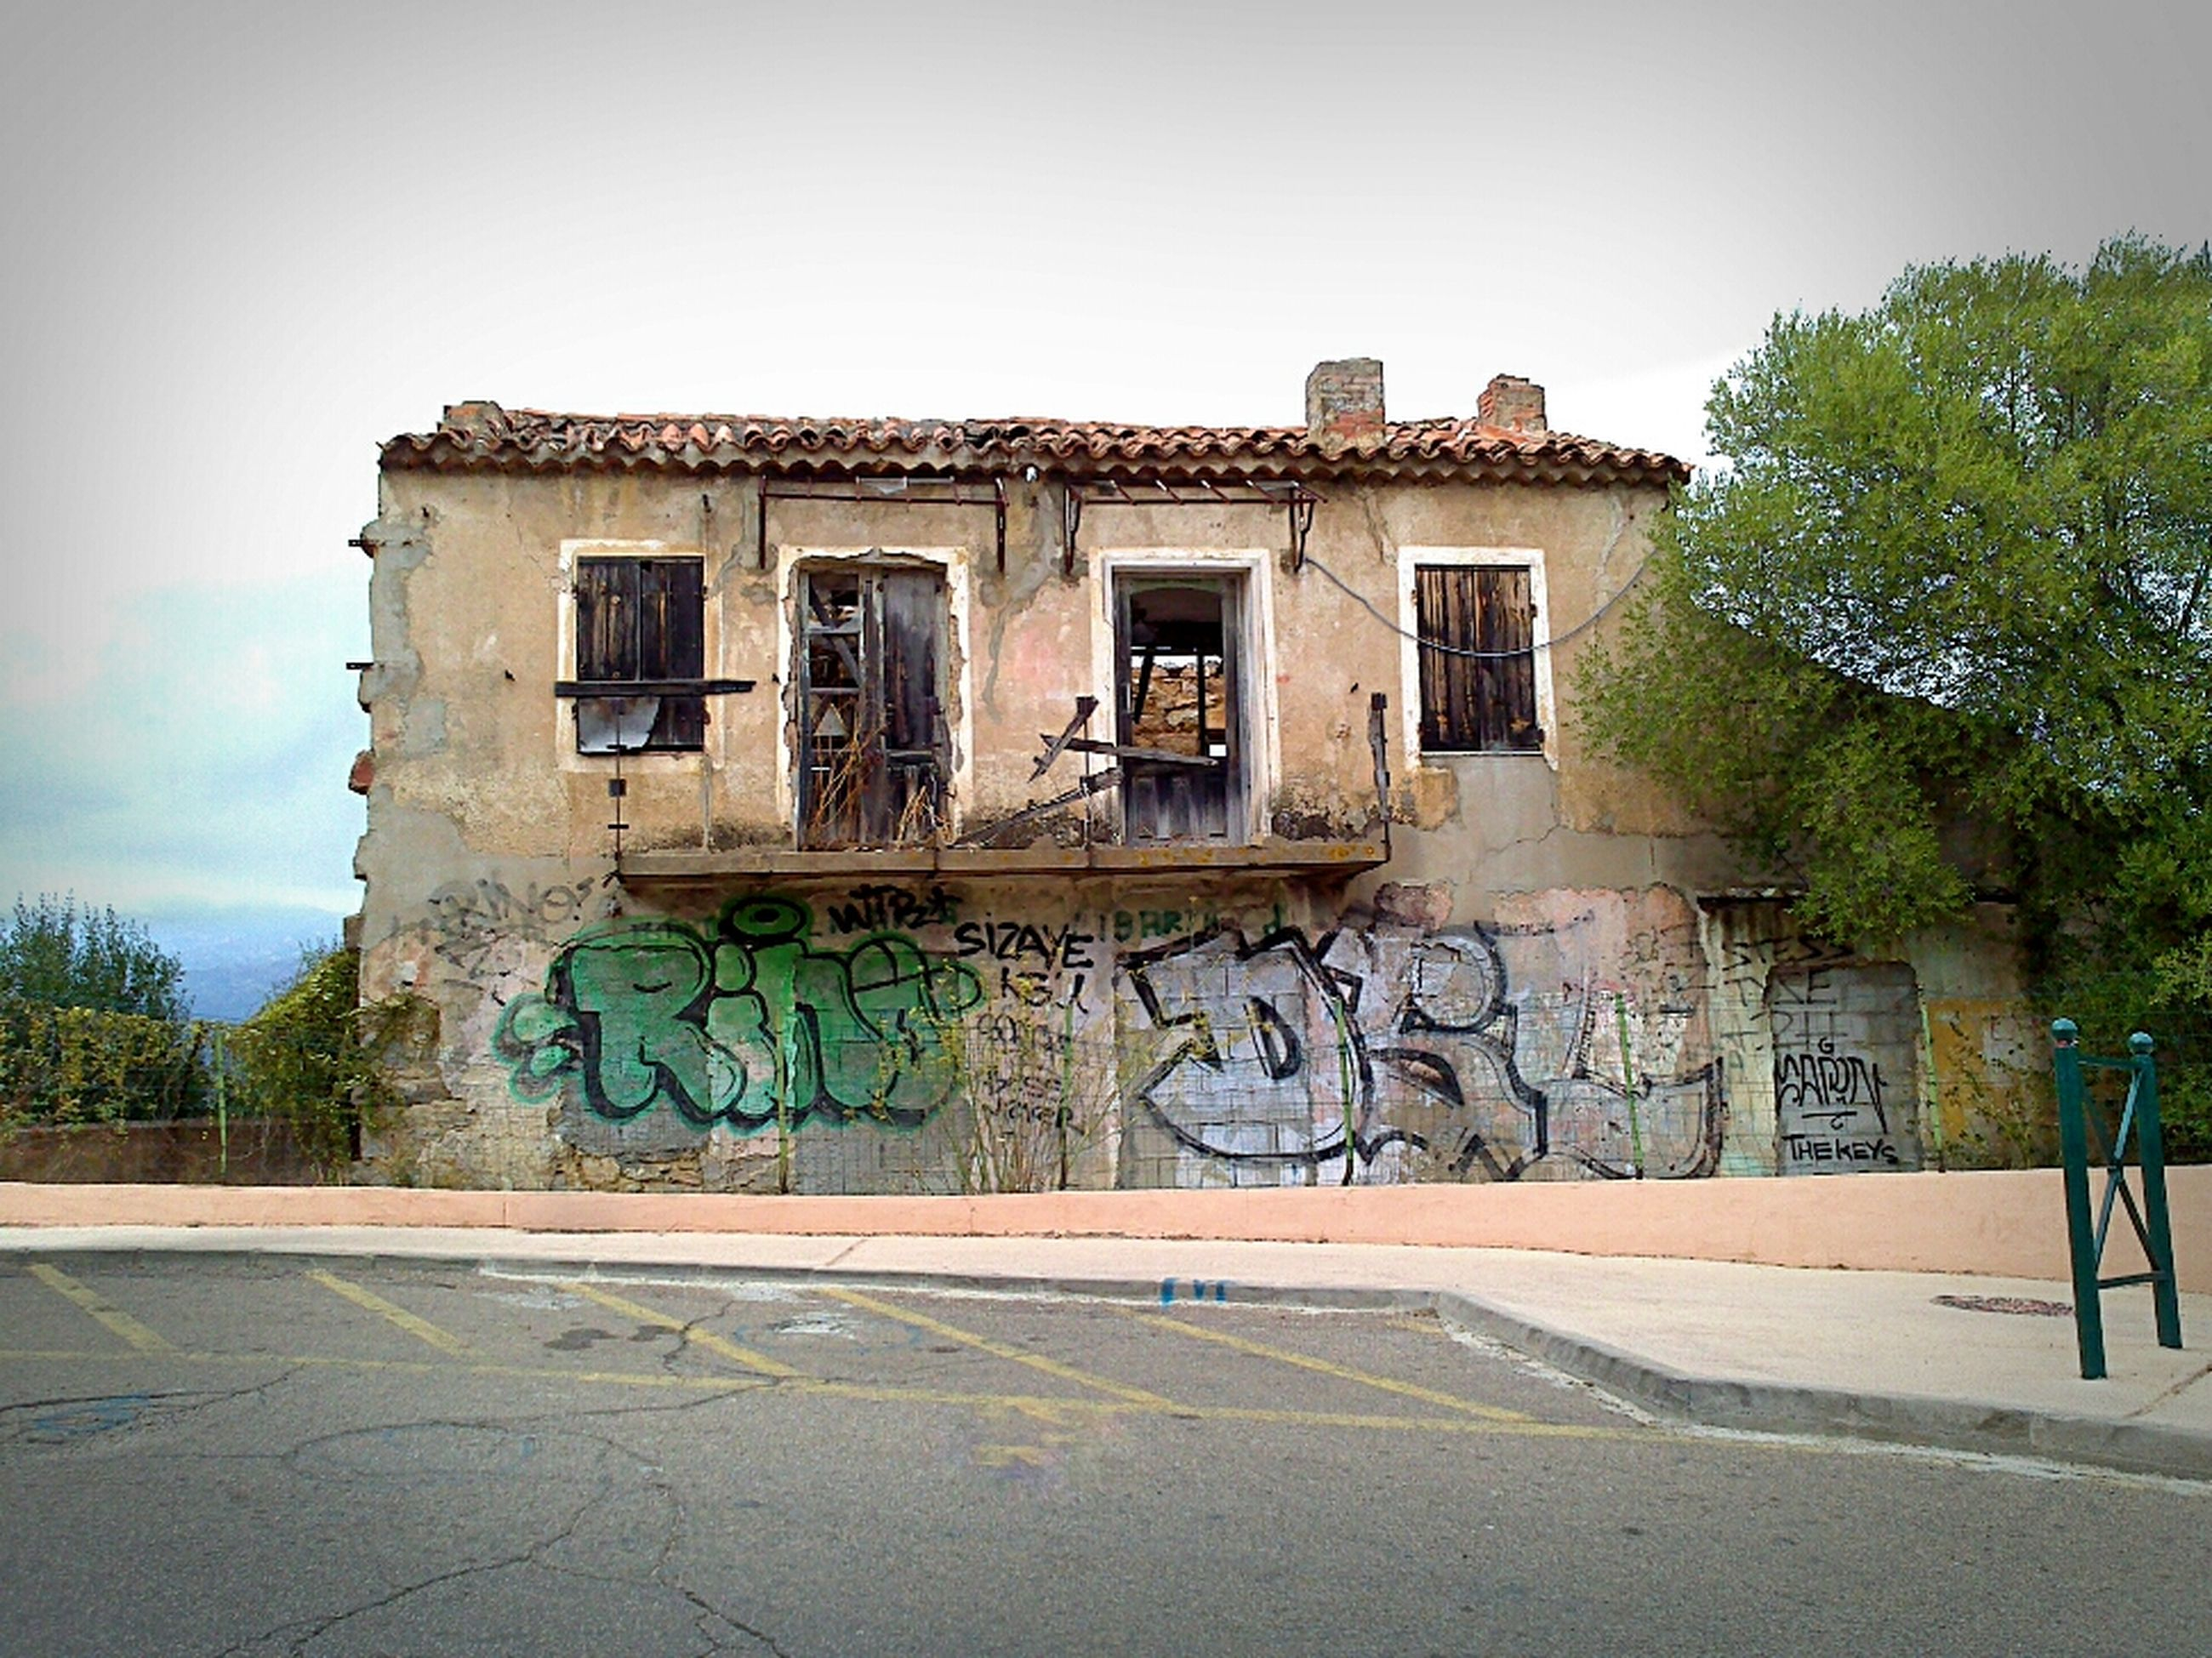 architecture, building exterior, built structure, graffiti, wall - building feature, window, house, day, sky, art, clear sky, art and craft, outdoors, street, facade, wall, building, tree, no people, residential structure